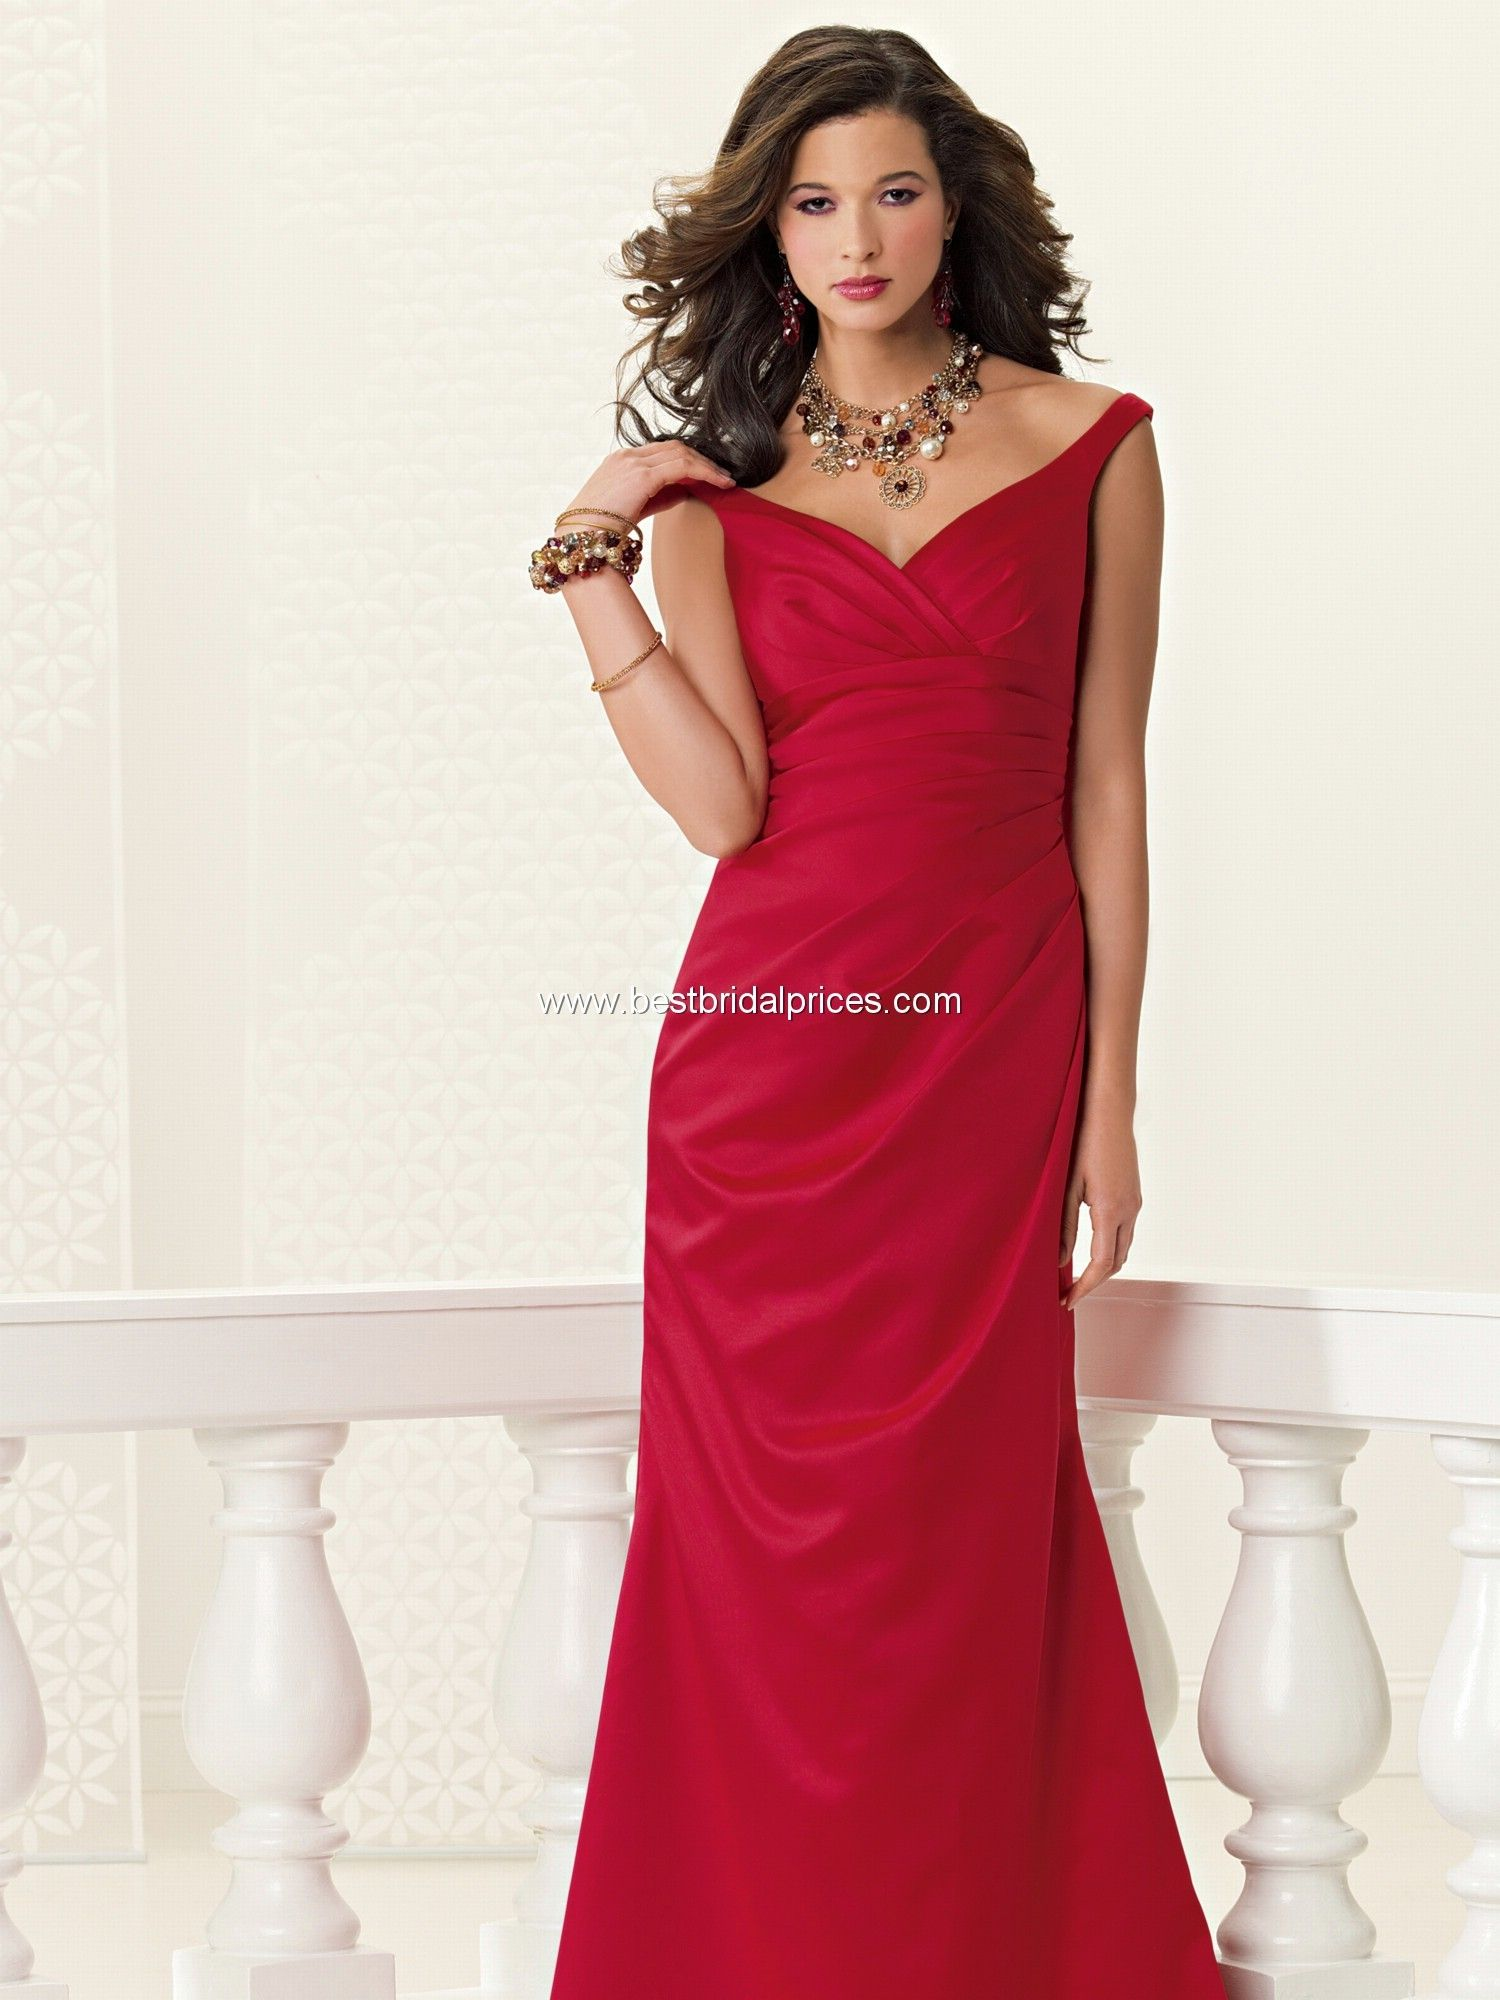 Jordan bridesmaid dresses style glamorous u formal